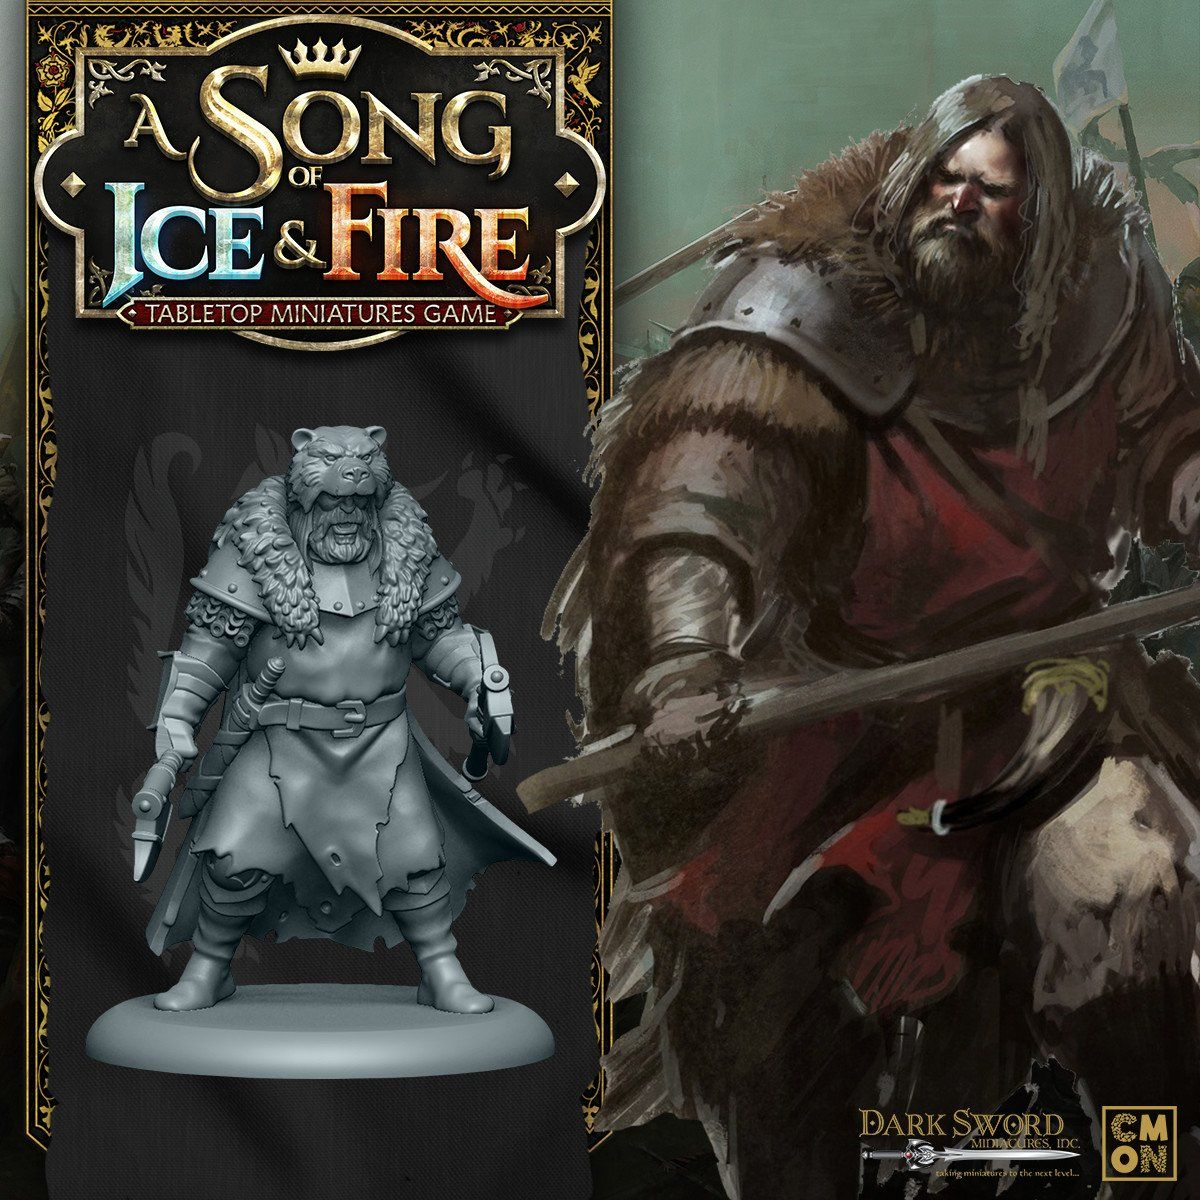 Cmon On With Images A Song Of Ice And Fire